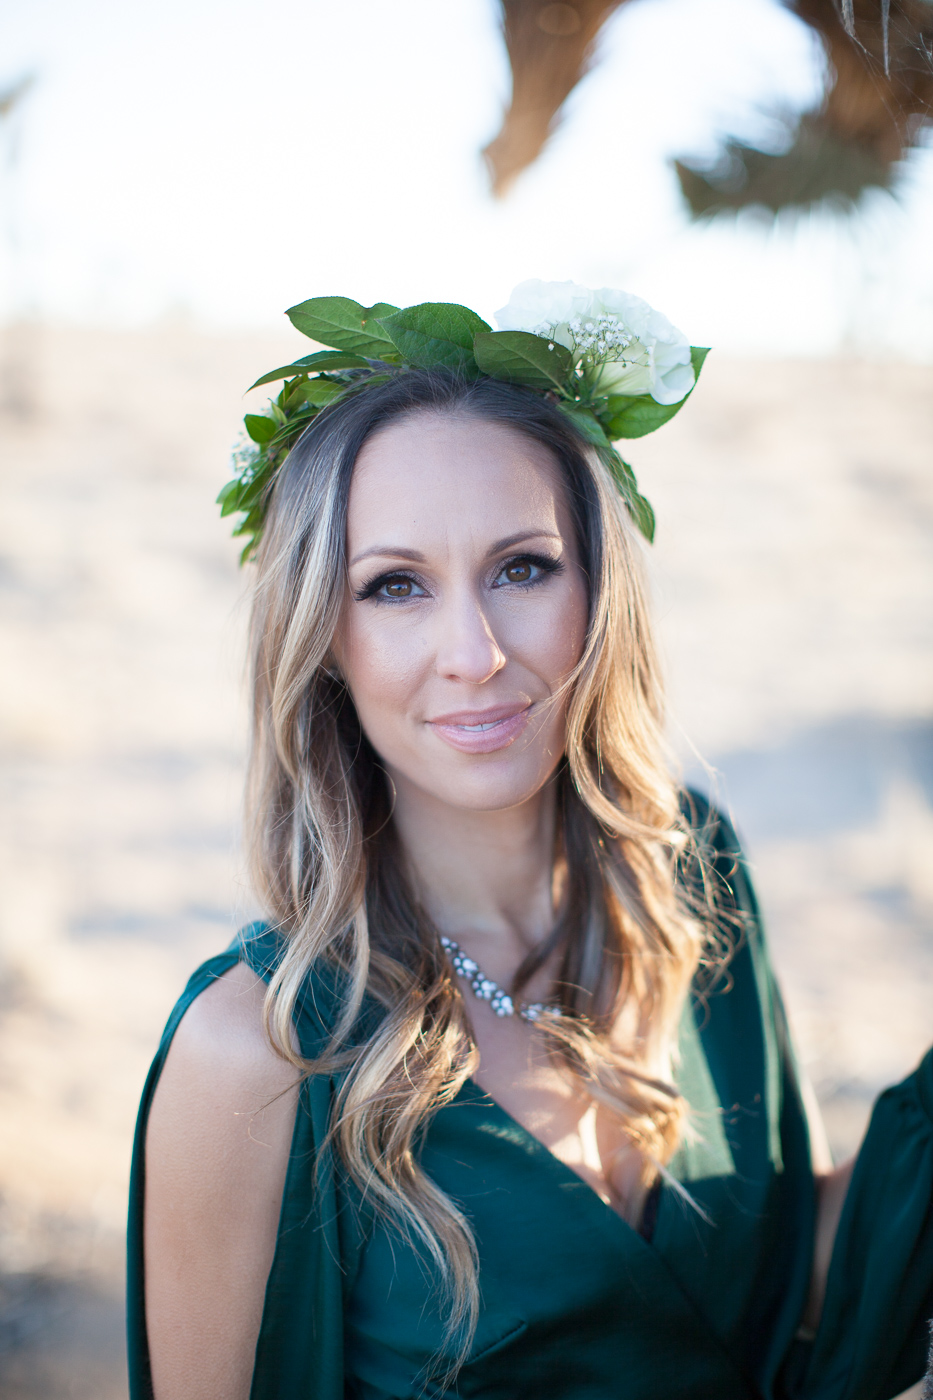 Wife in a flower crown, Joshua Tree Anniversary Session | Lindsey Parkin Photography